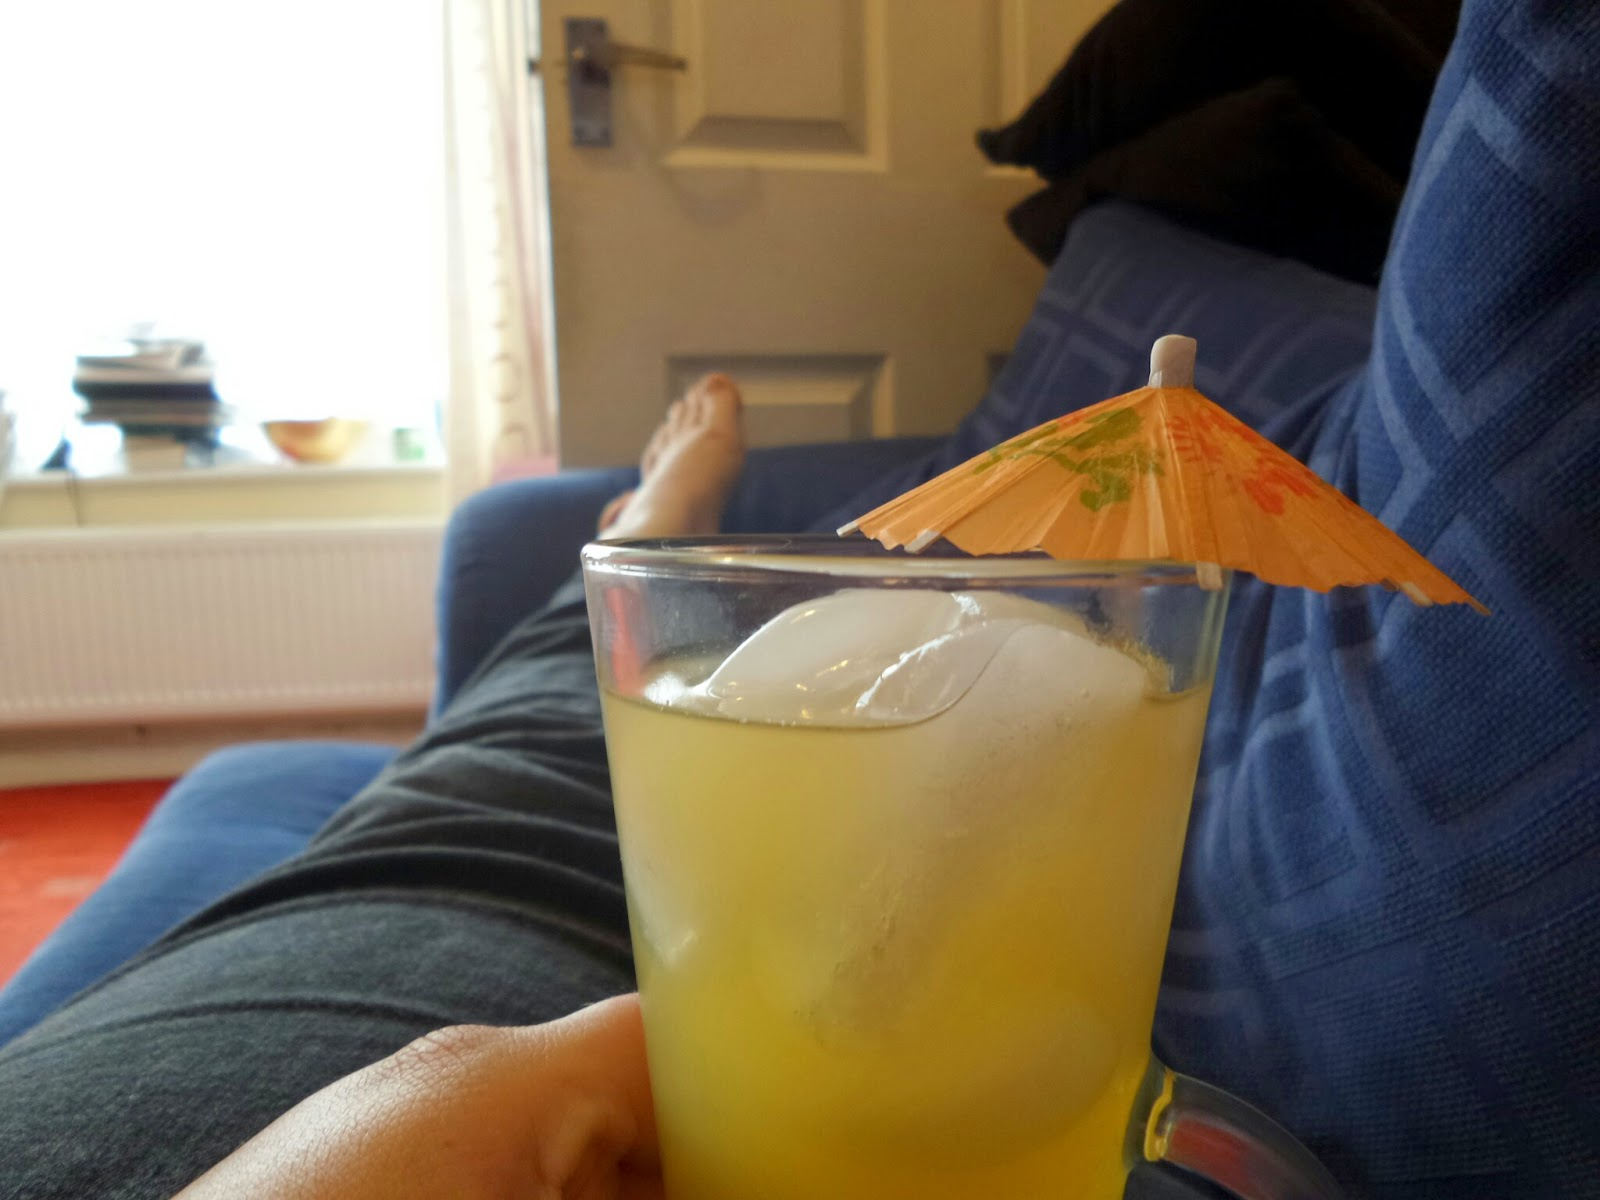 The Cracker Drinks Co Pineapple, Coconut & Lime Drink in a glass